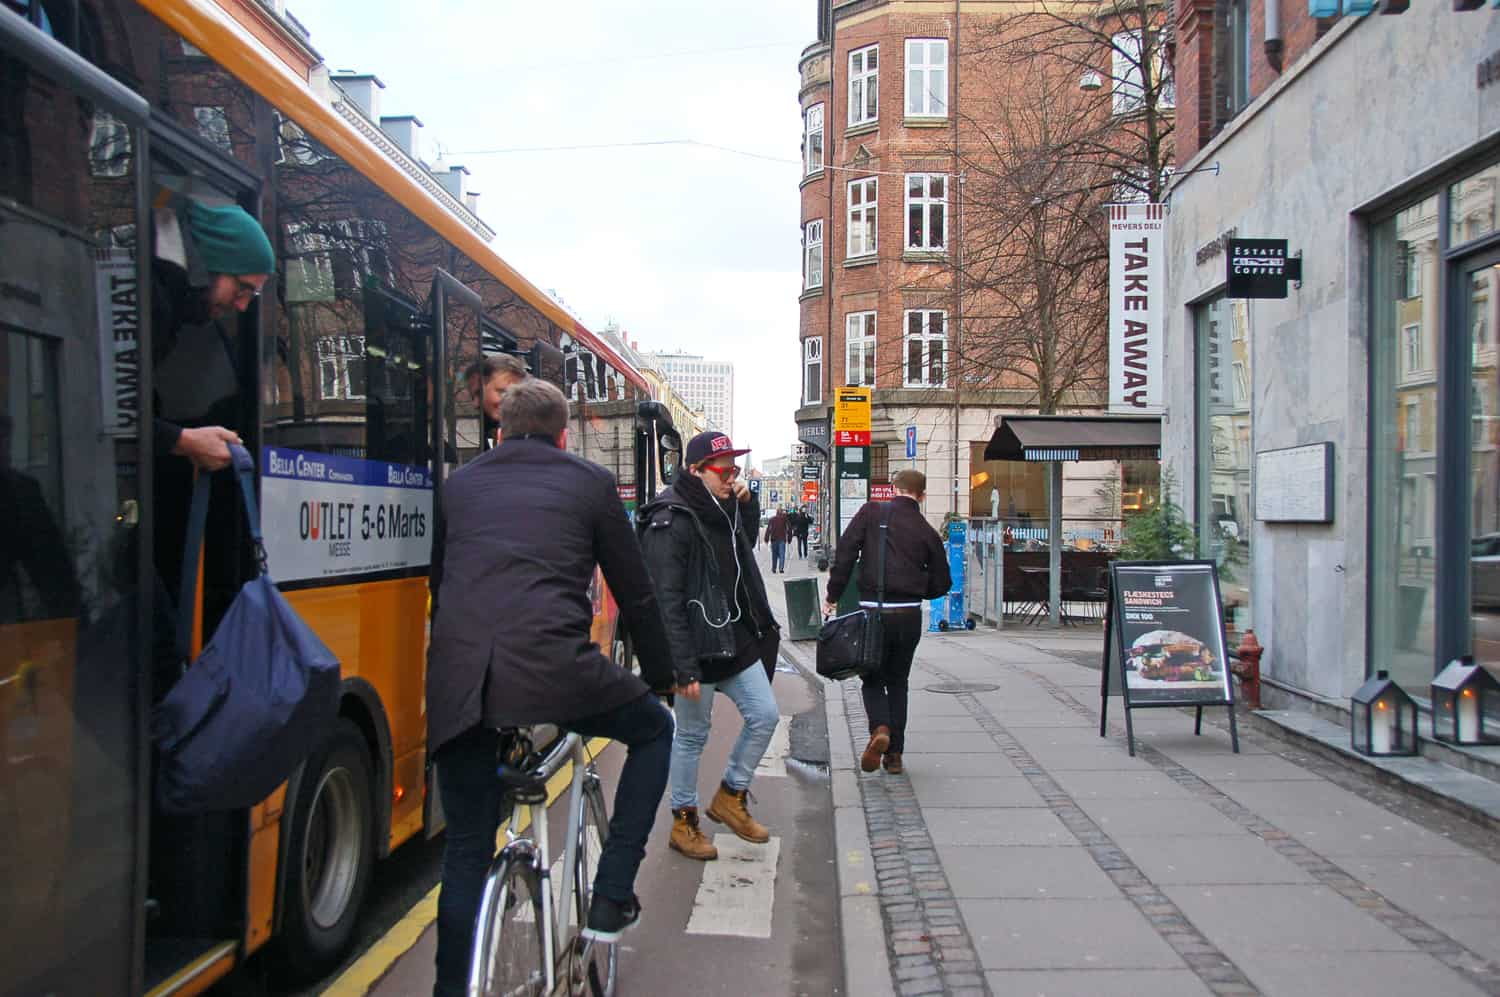 Bus and bikes - who should stop?